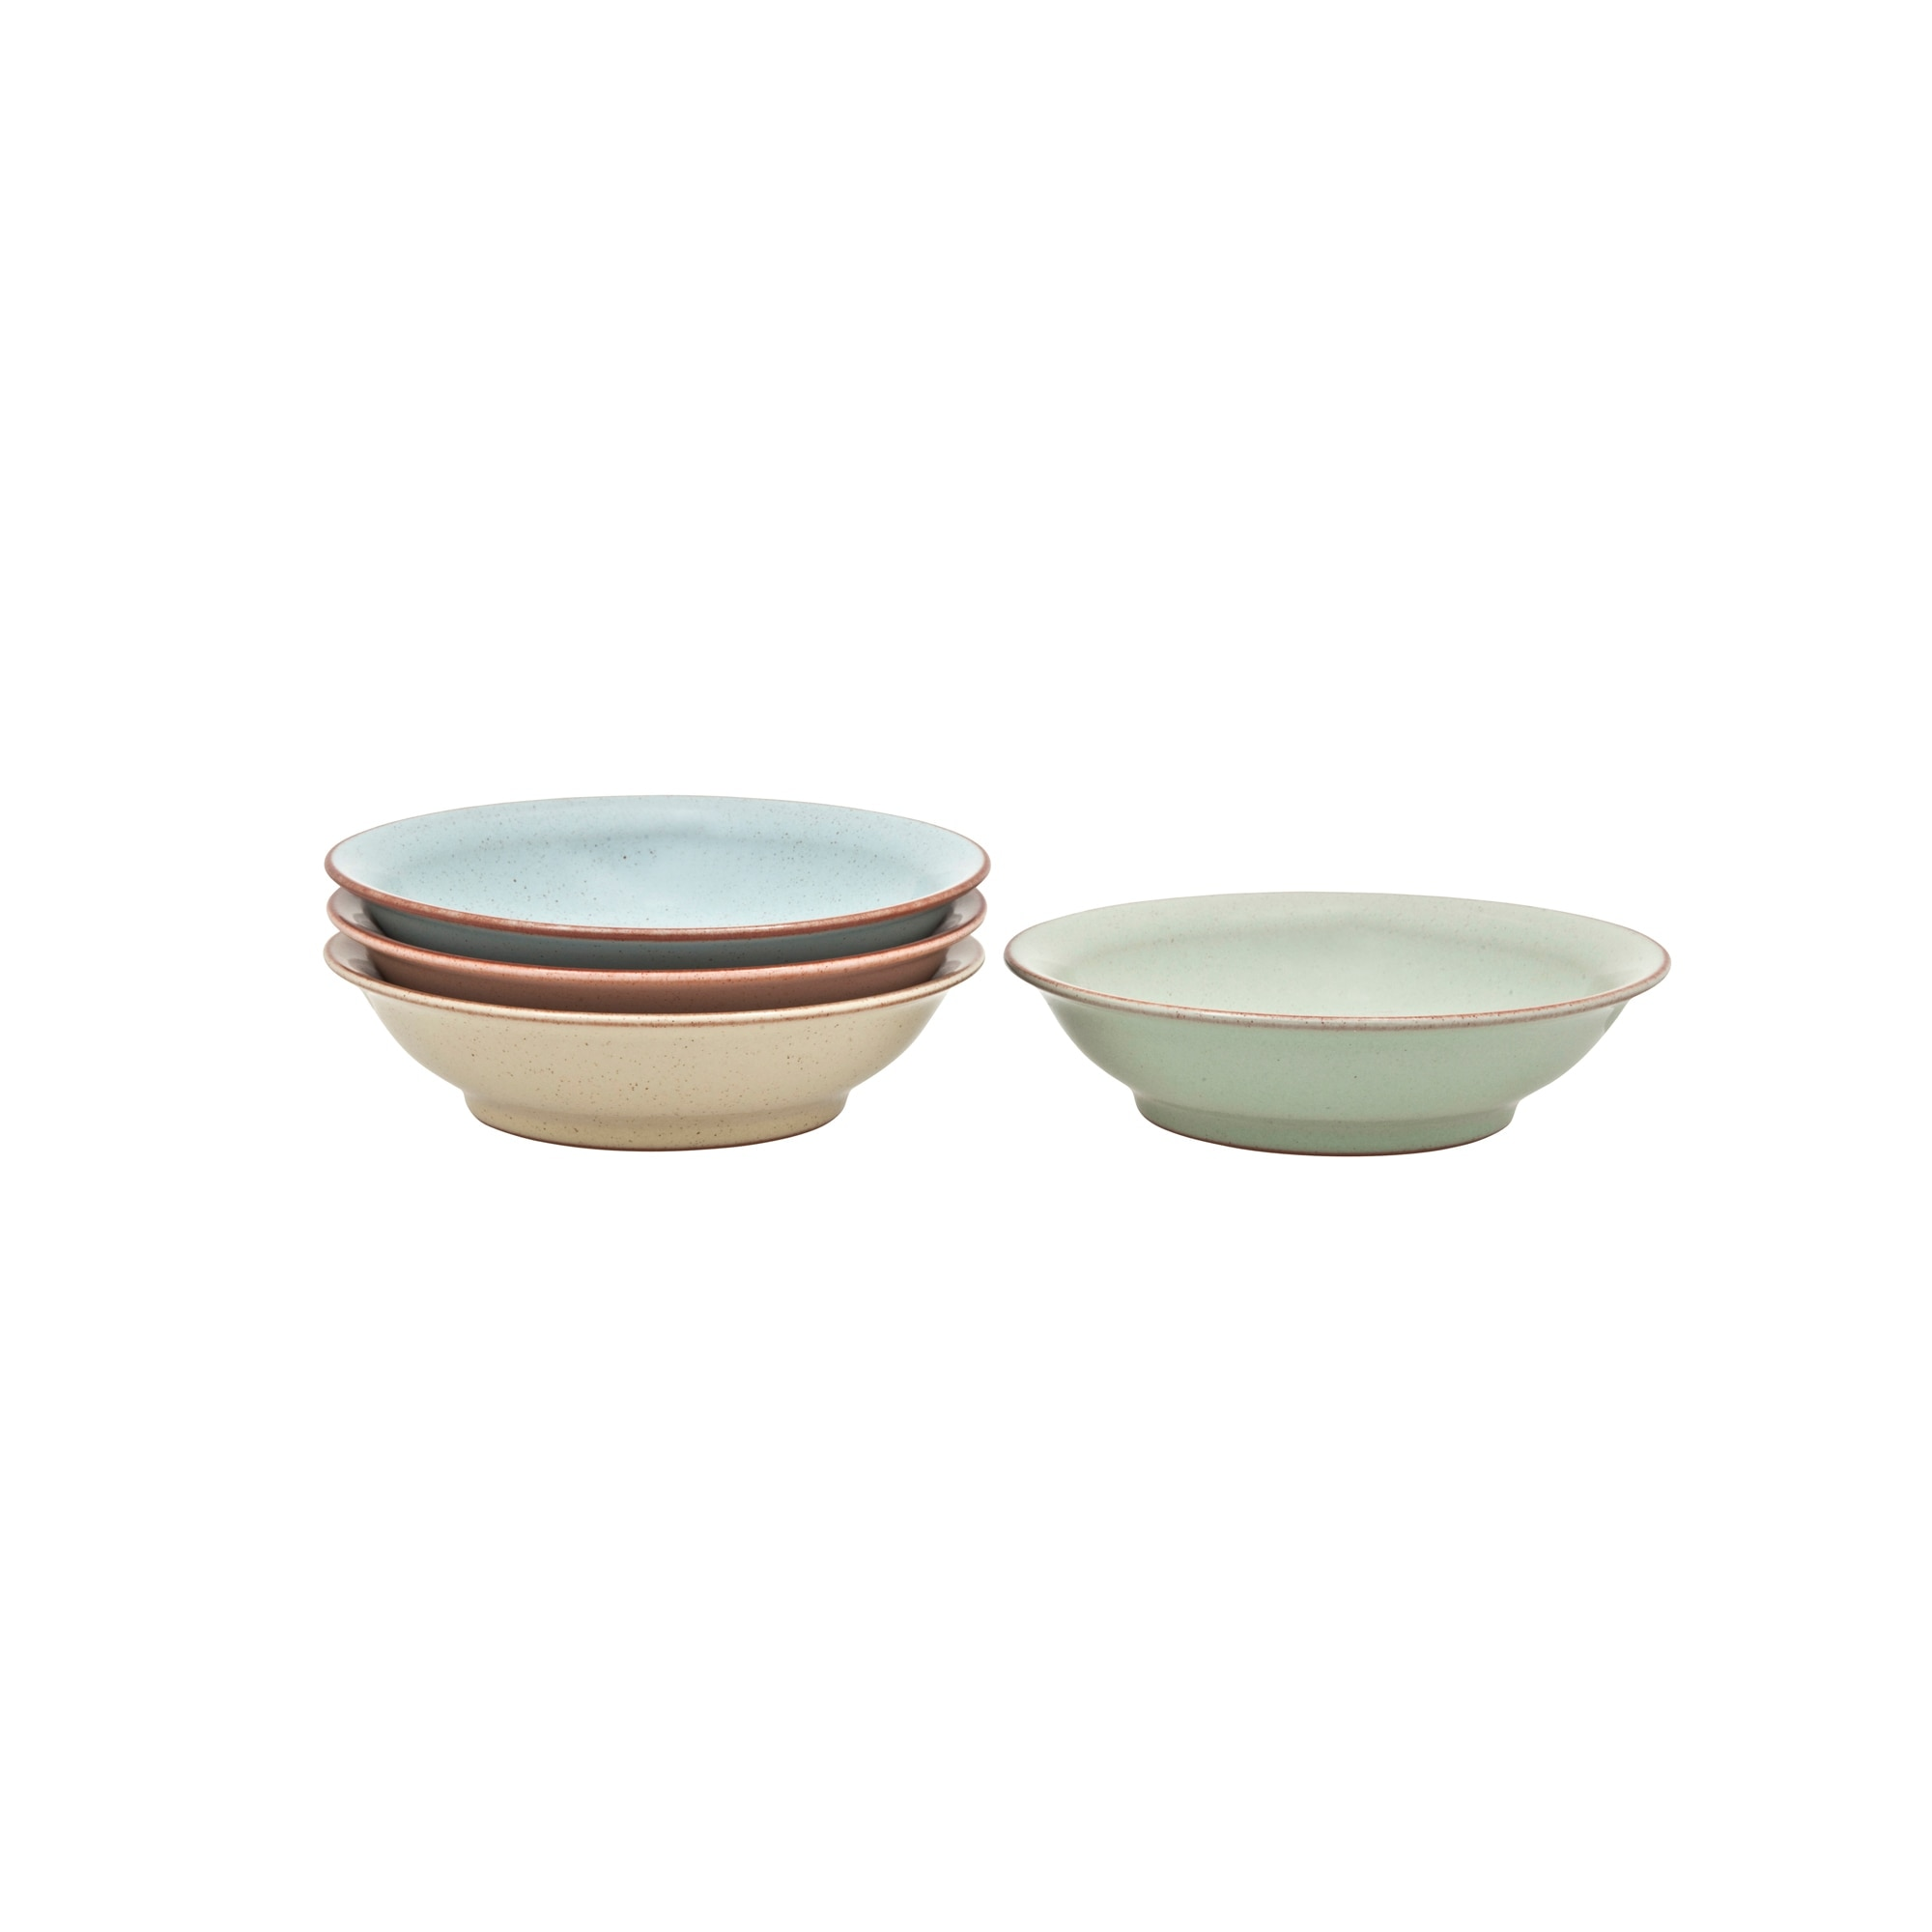 Image of Always Entertaining Deli 4 Piece Medium Shallow Bowl Set